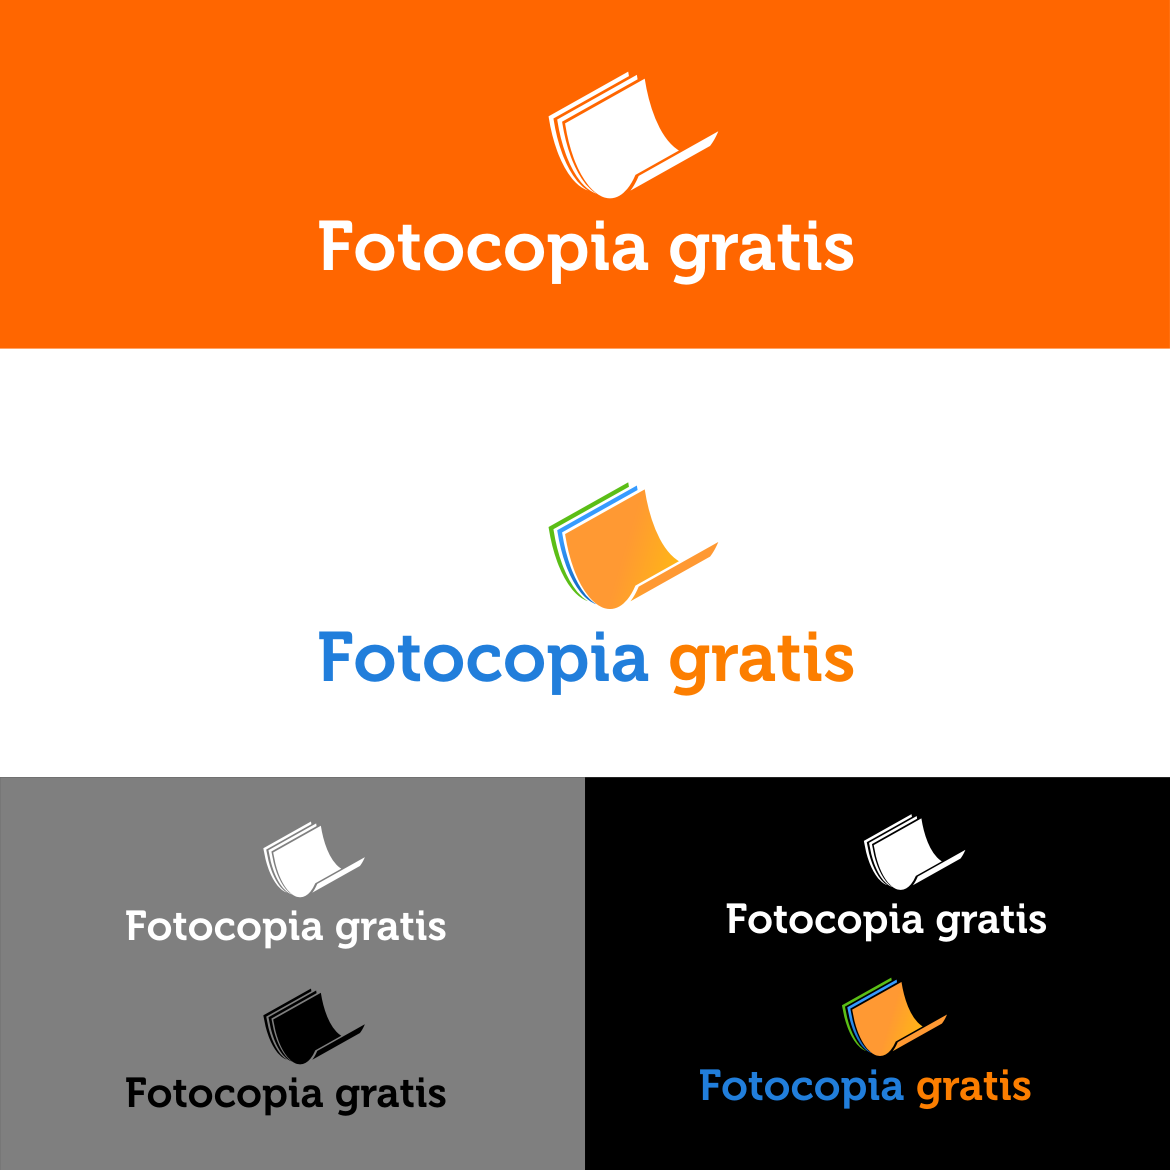 Logo Design by rifatz - Entry No. 69 in the Logo Design Contest Inspiring Logo Design for Fotocopiagratis.